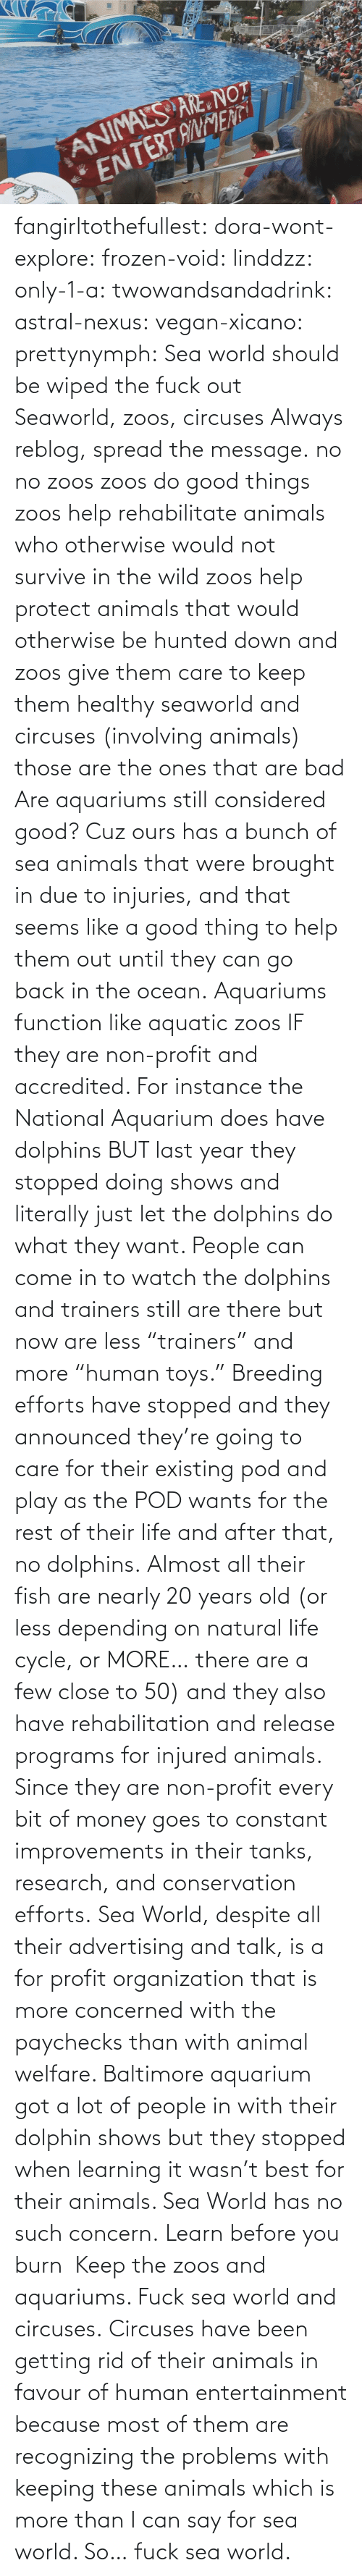 "pod: fangirltothefullest:  dora-wont-explore:  frozen-void:  linddzz:  only-1-a:  twowandsandadrink:  astral-nexus:  vegan-xicano:  prettynymph:  Sea world should be wiped the fuck out  Seaworld, zoos, circuses  Always reblog, spread the message.  no no zoos zoos do good things zoos help rehabilitate animals who otherwise would not survive in the wild zoos help protect animals that would otherwise be hunted down and zoos give them care to keep them healthy seaworld and circuses (involving animals) those are the ones that are bad  Are aquariums still considered good? Cuz ours has a bunch of sea animals that were brought in due to injuries, and that seems like a good thing to help them out until they can go back in the ocean.  Aquariums function like aquatic zoos IF they are non-profit and accredited. For instance the National Aquarium does have dolphins BUT last year they stopped doing shows and literally just let the dolphins do what they want. People can come in to watch the dolphins and trainers still are there but now are less ""trainers"" and more ""human toys."" Breeding efforts have stopped and they announced they're going to care for their existing pod and play as the POD wants for the rest of their life and after that, no dolphins. Almost all their fish are nearly 20 years old (or less depending on natural life cycle, or MORE… there are a few close to 50) and they also have rehabilitation and release programs for injured animals. Since they are non-profit every bit of money goes to constant improvements in their tanks, research, and conservation efforts. Sea World, despite all their advertising and talk, is a for profit organization that is more concerned with the paychecks than with animal welfare. Baltimore aquarium got a lot of people in with their dolphin shows but they stopped when learning it wasn't best for their animals. Sea World has no such concern.  Learn before you burn   Keep the zoos and aquariums. Fuck sea world and circuses.  Circuses have been getting rid of  their animals in favour of human entertainment because most of them are recognizing the problems with keeping these animals which is more than I can say for sea world. So… fuck sea world."